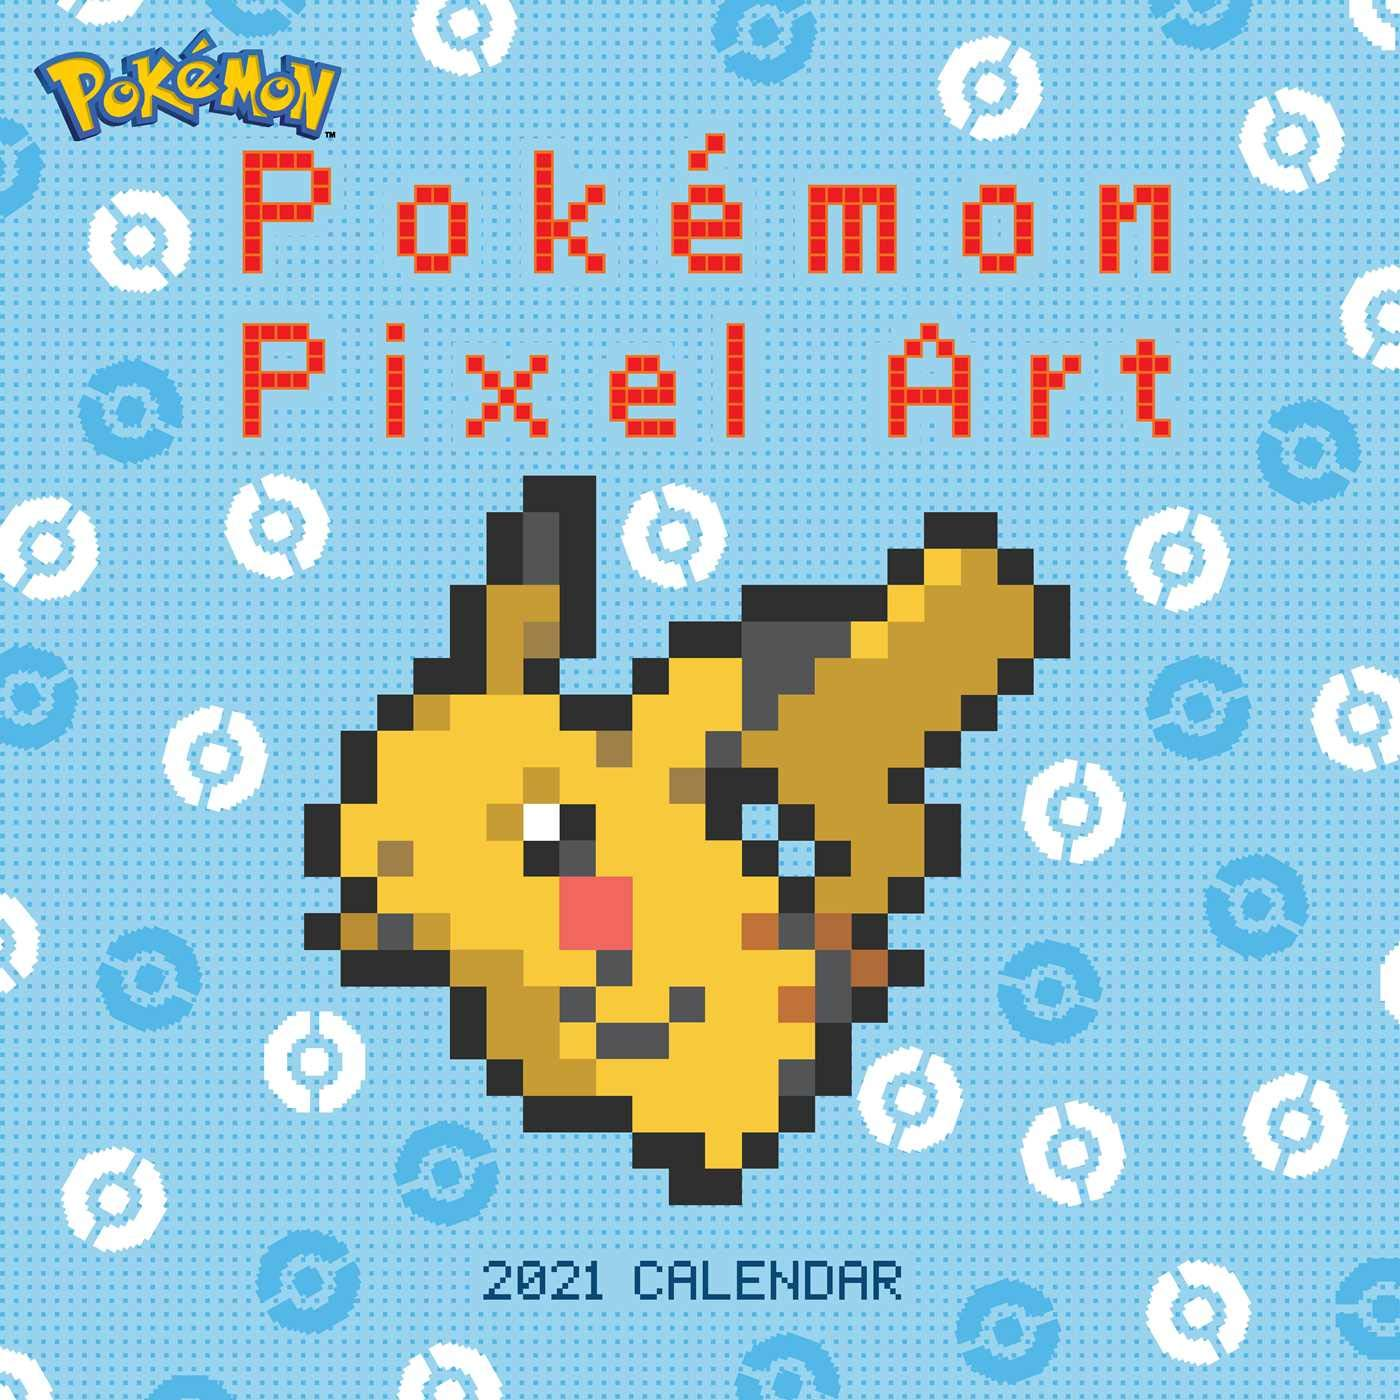 Pokemon Pixel Art : We have high quality images and totally free.